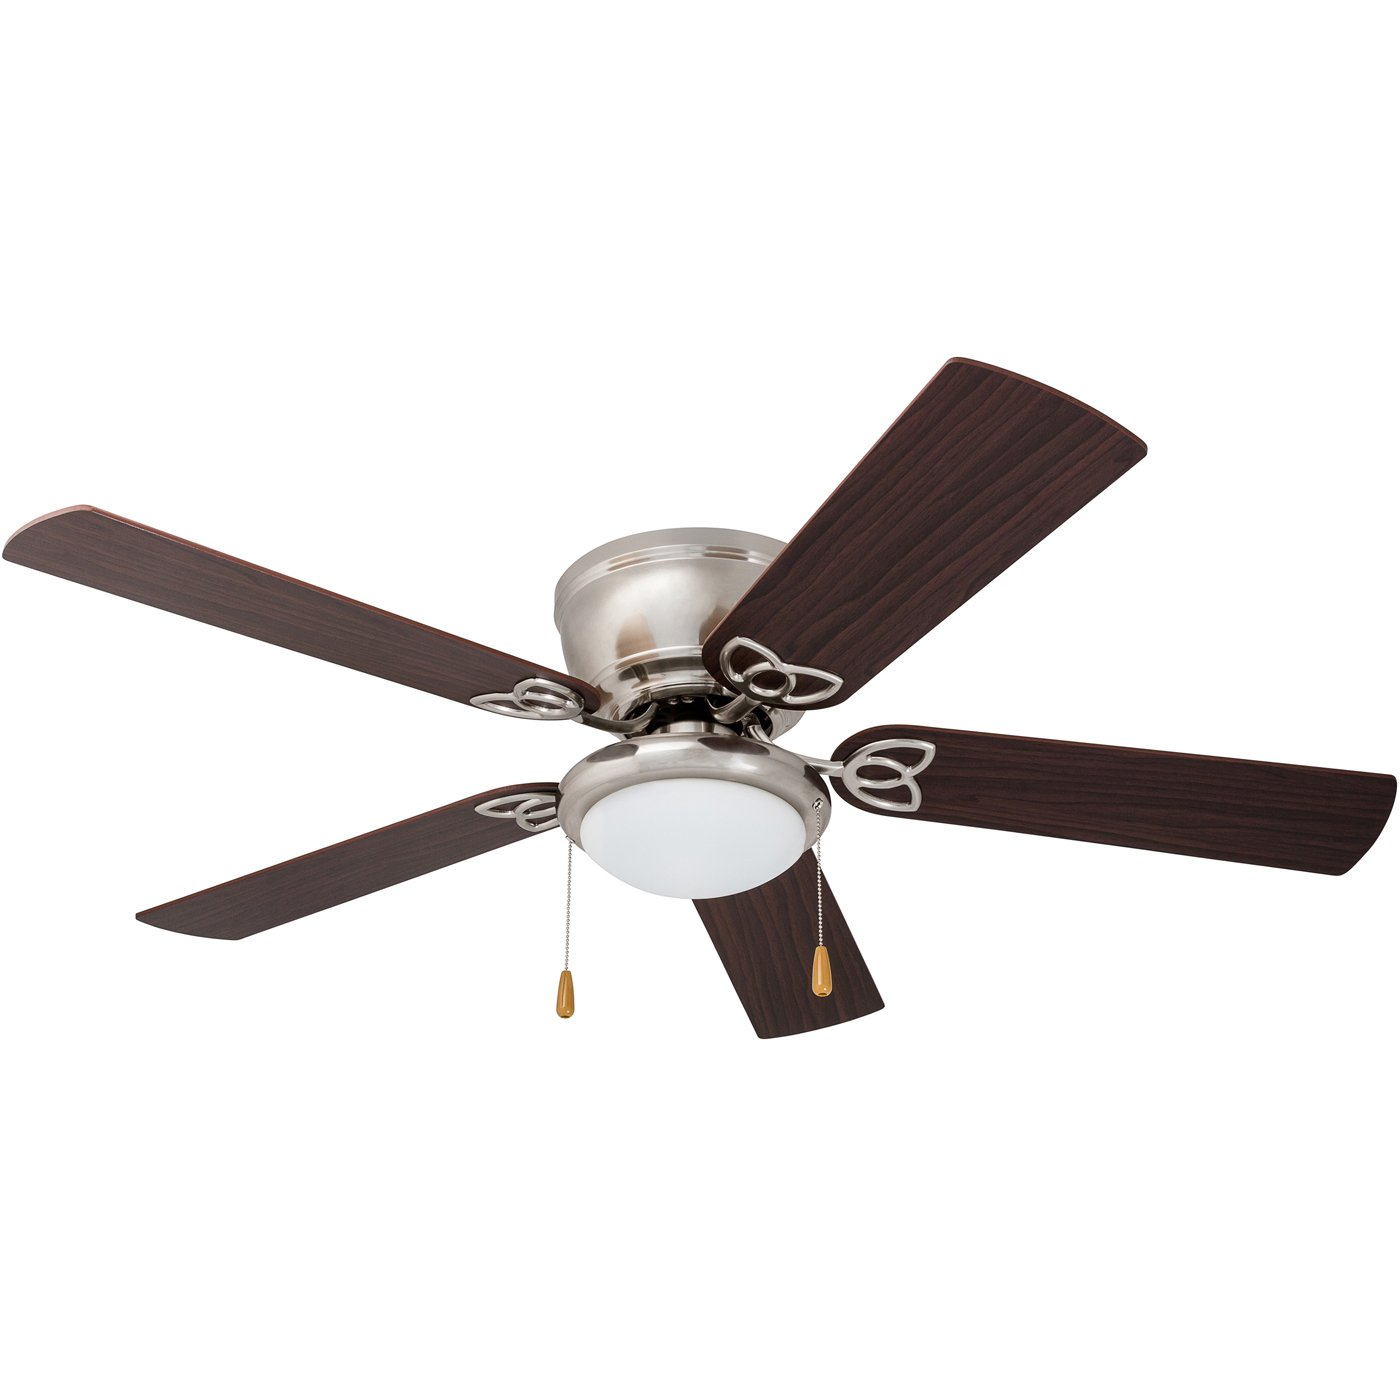 Prominence Home 40270-01 Brealey Hugger Ceiling Fan with LED Bowl Light, Low-Profile, 52 inches, Brushed Nickel